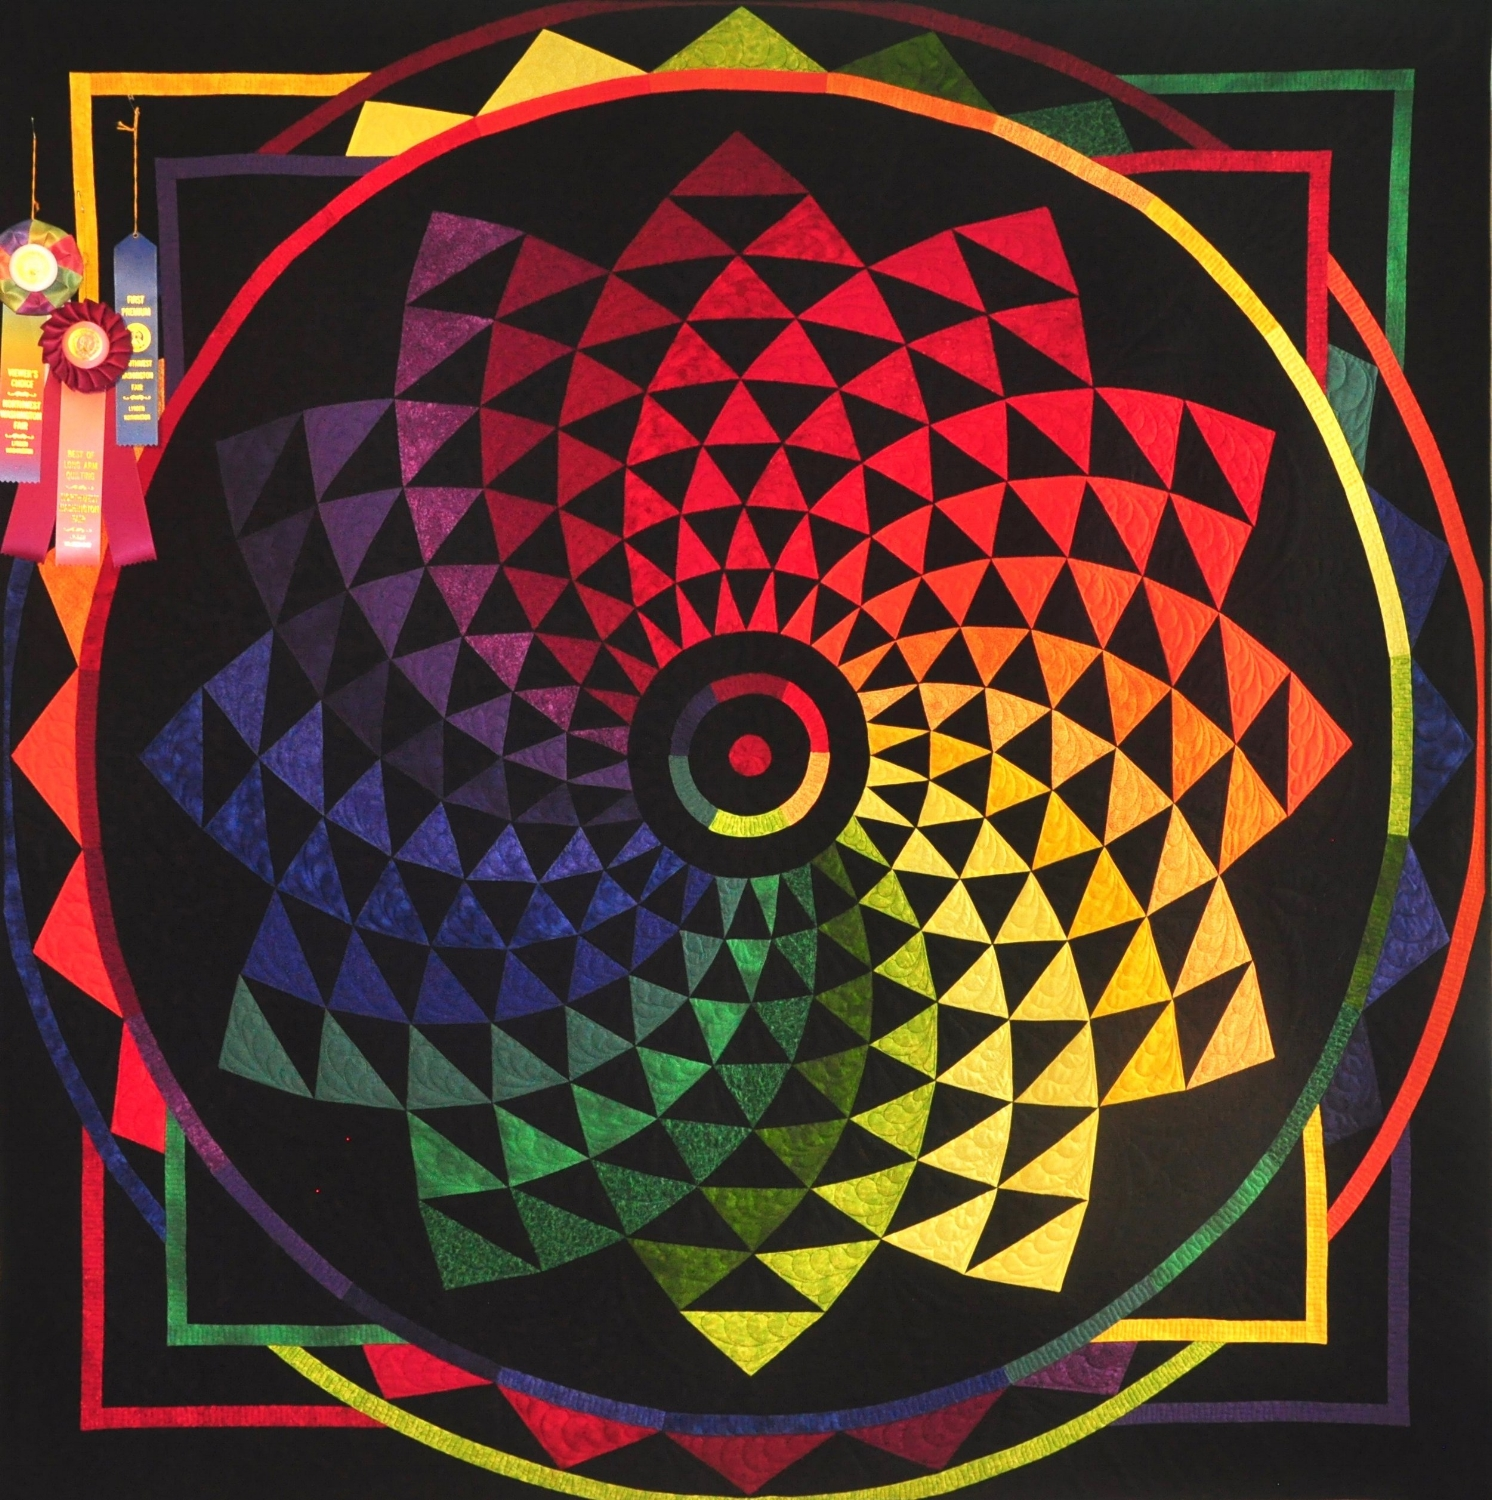 Kaleidoscope (July 2018)